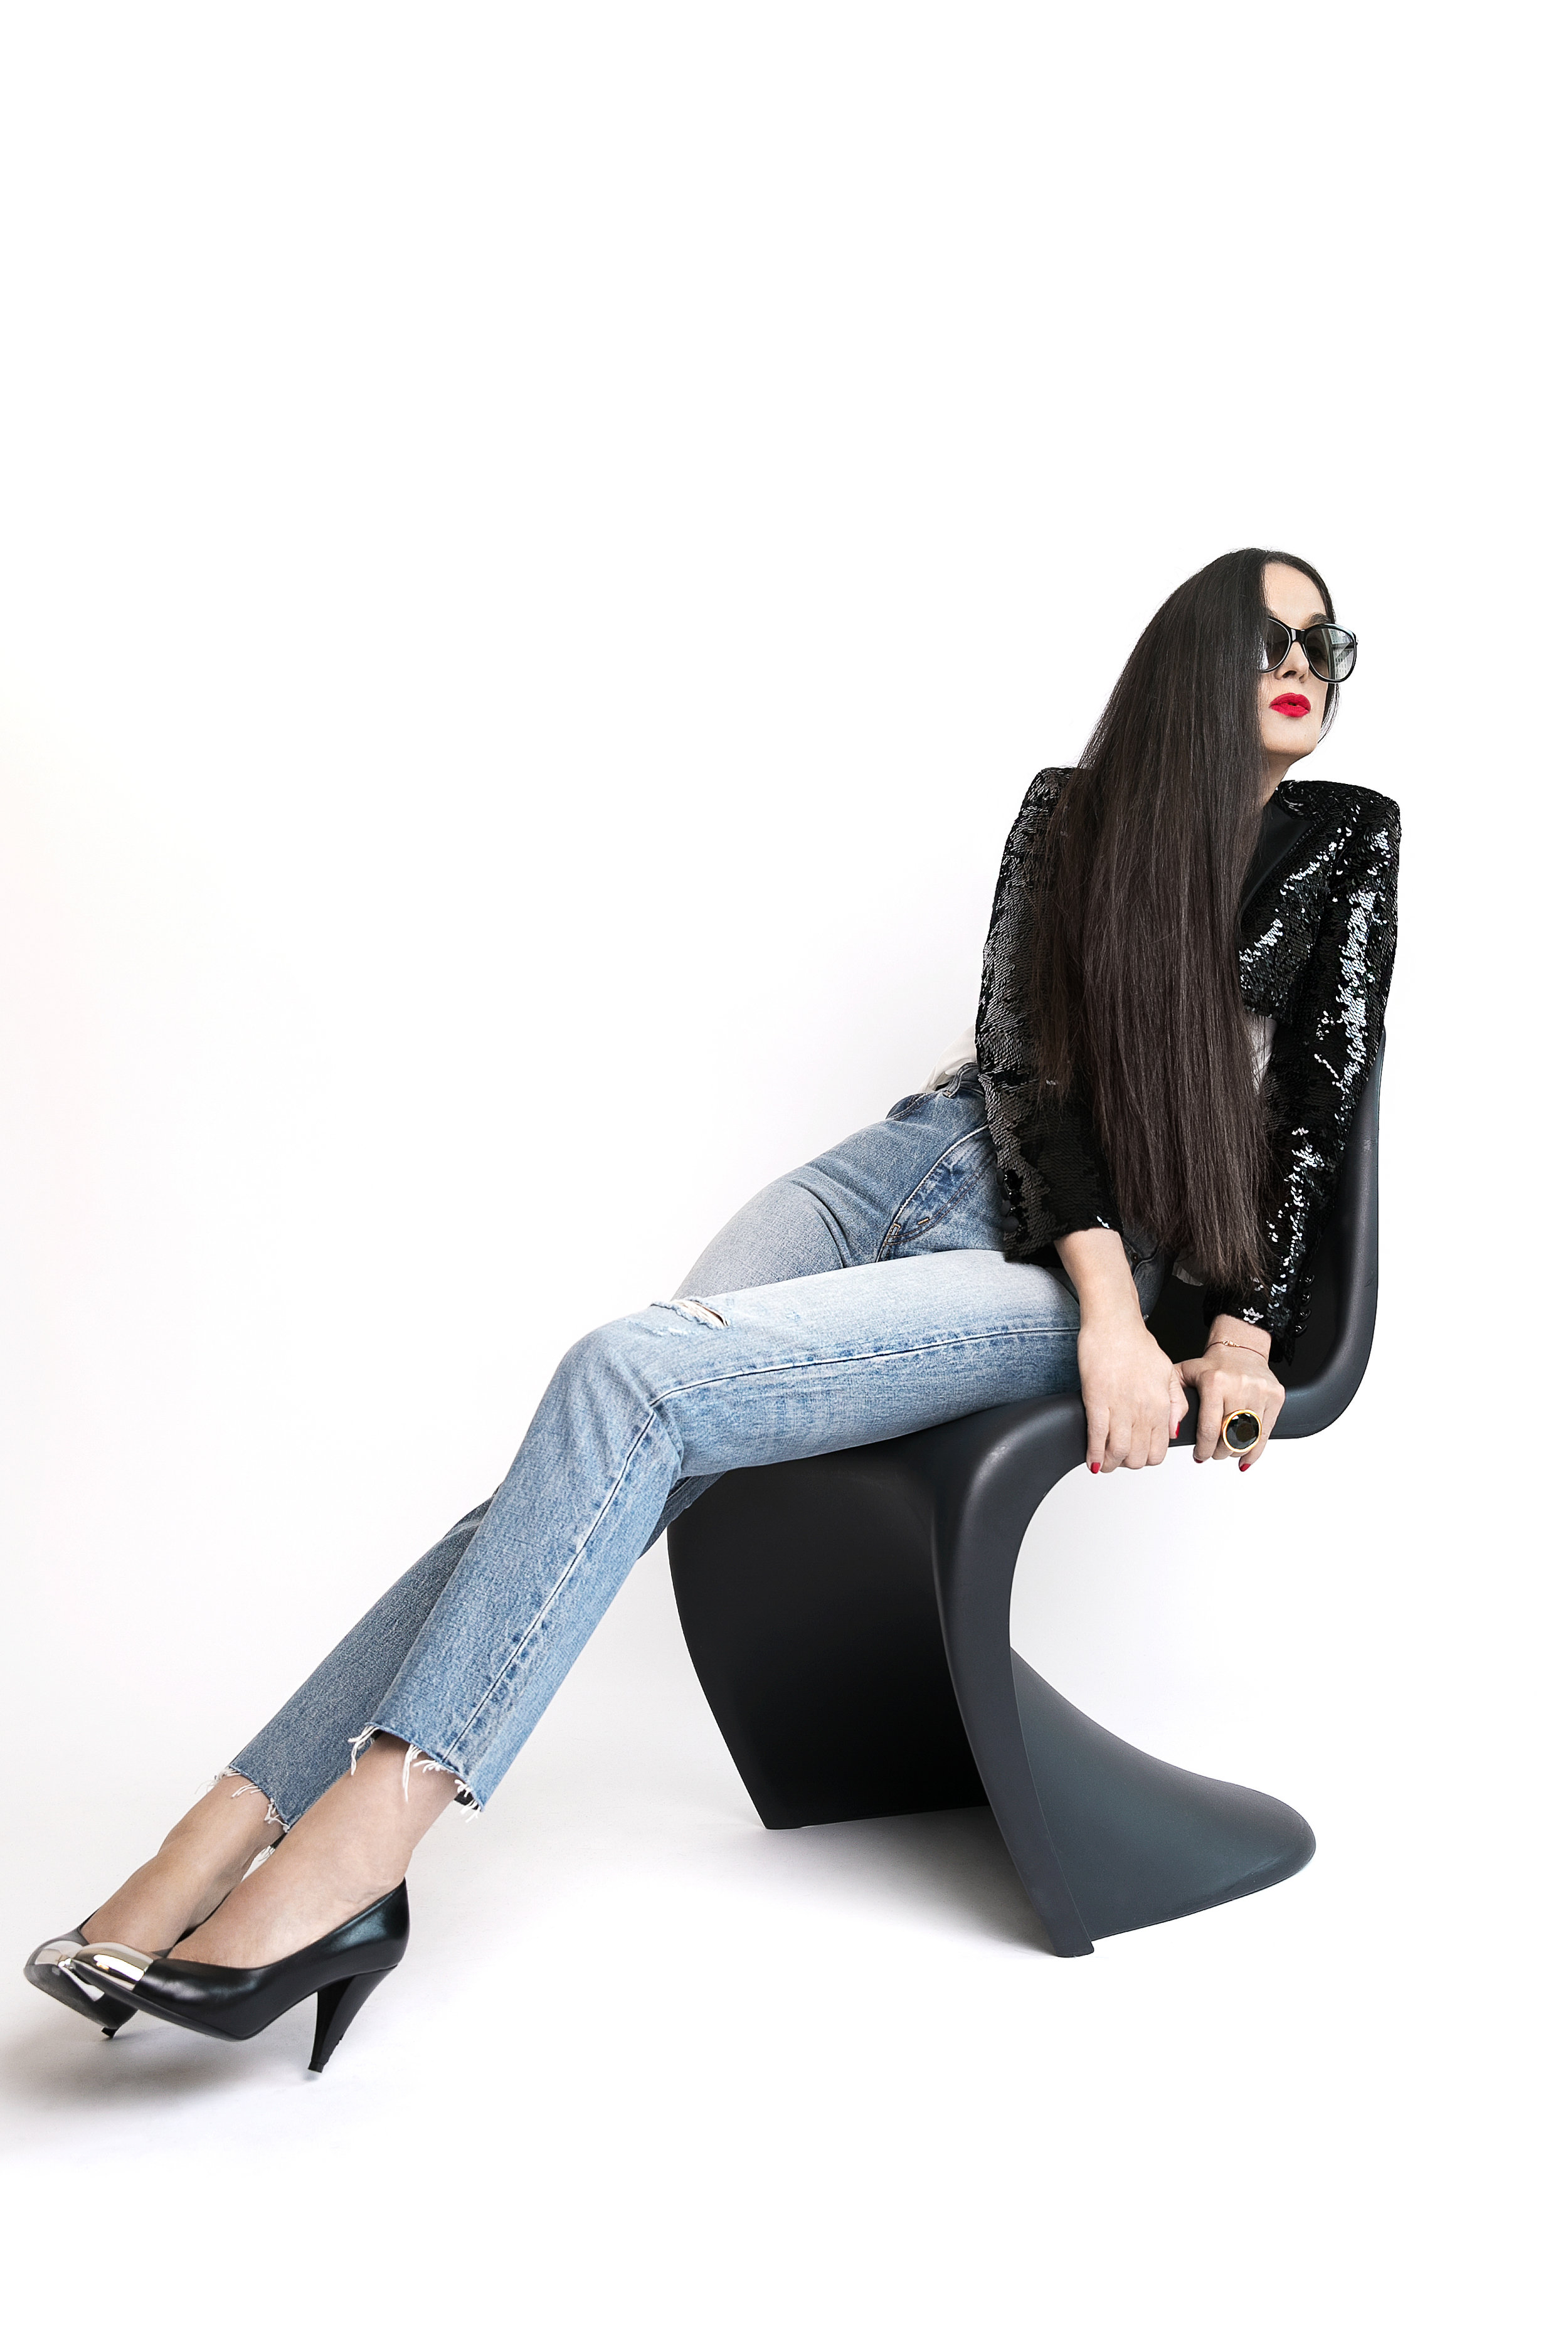 Top, jeans and shoes Céline, sunglasses Tom Ford. Photo  Lena Di